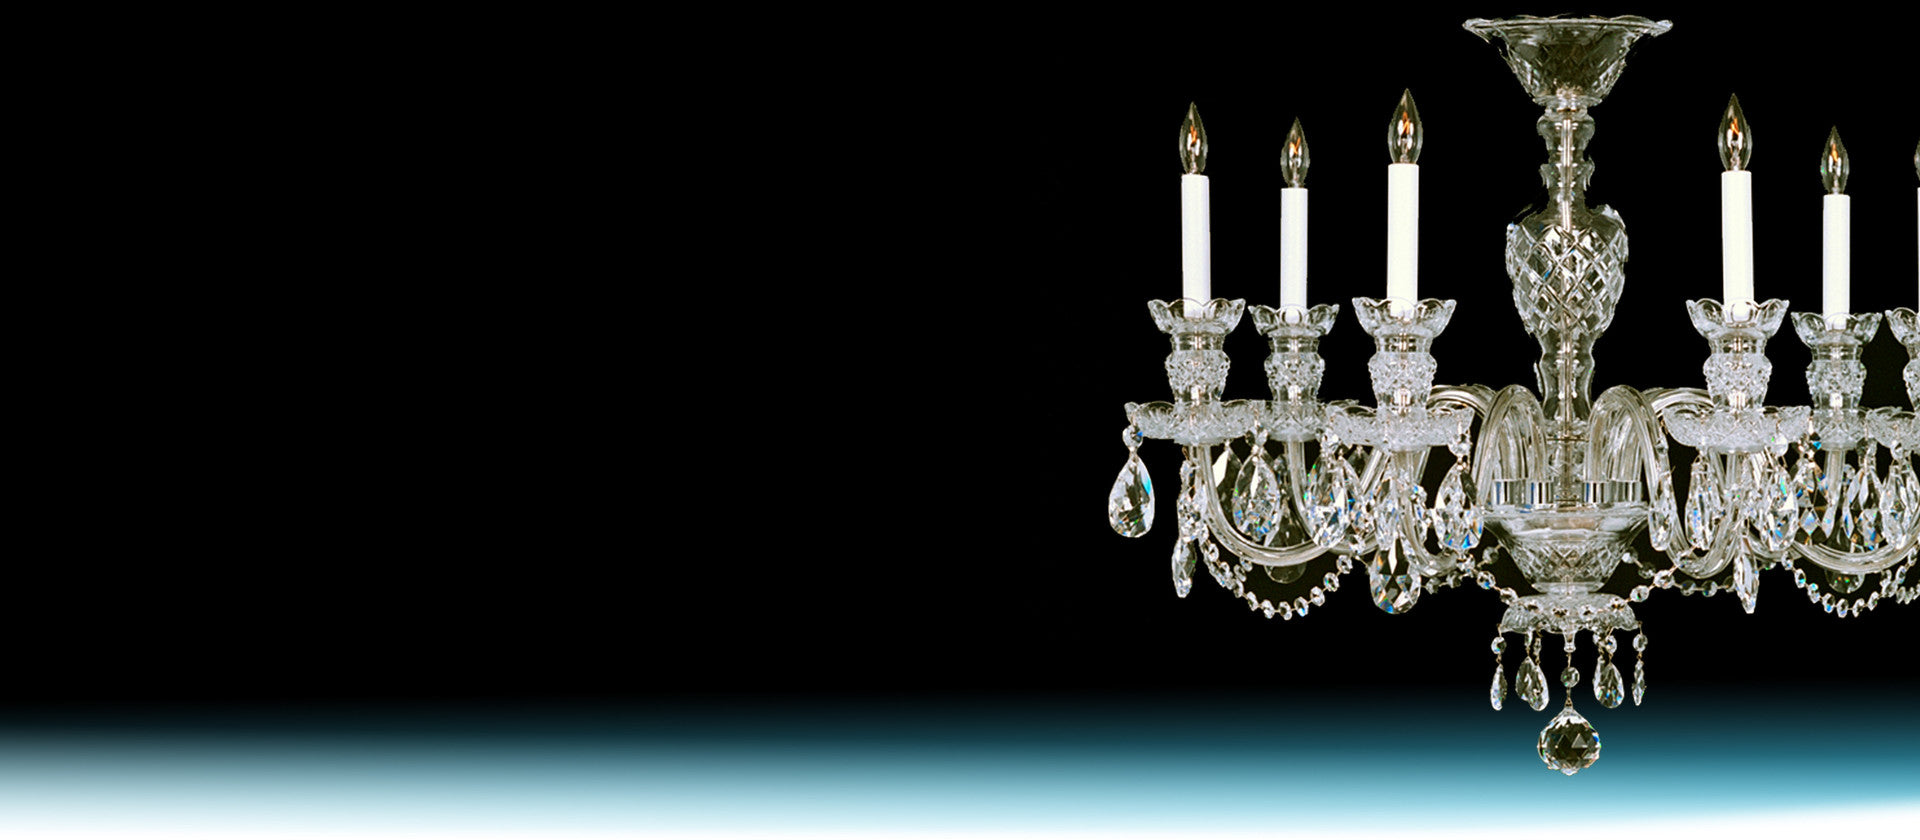 Crystal chandeliers and wall sconces direct free shipping crystal chandeliers and sconces arubaitofo Choice Image